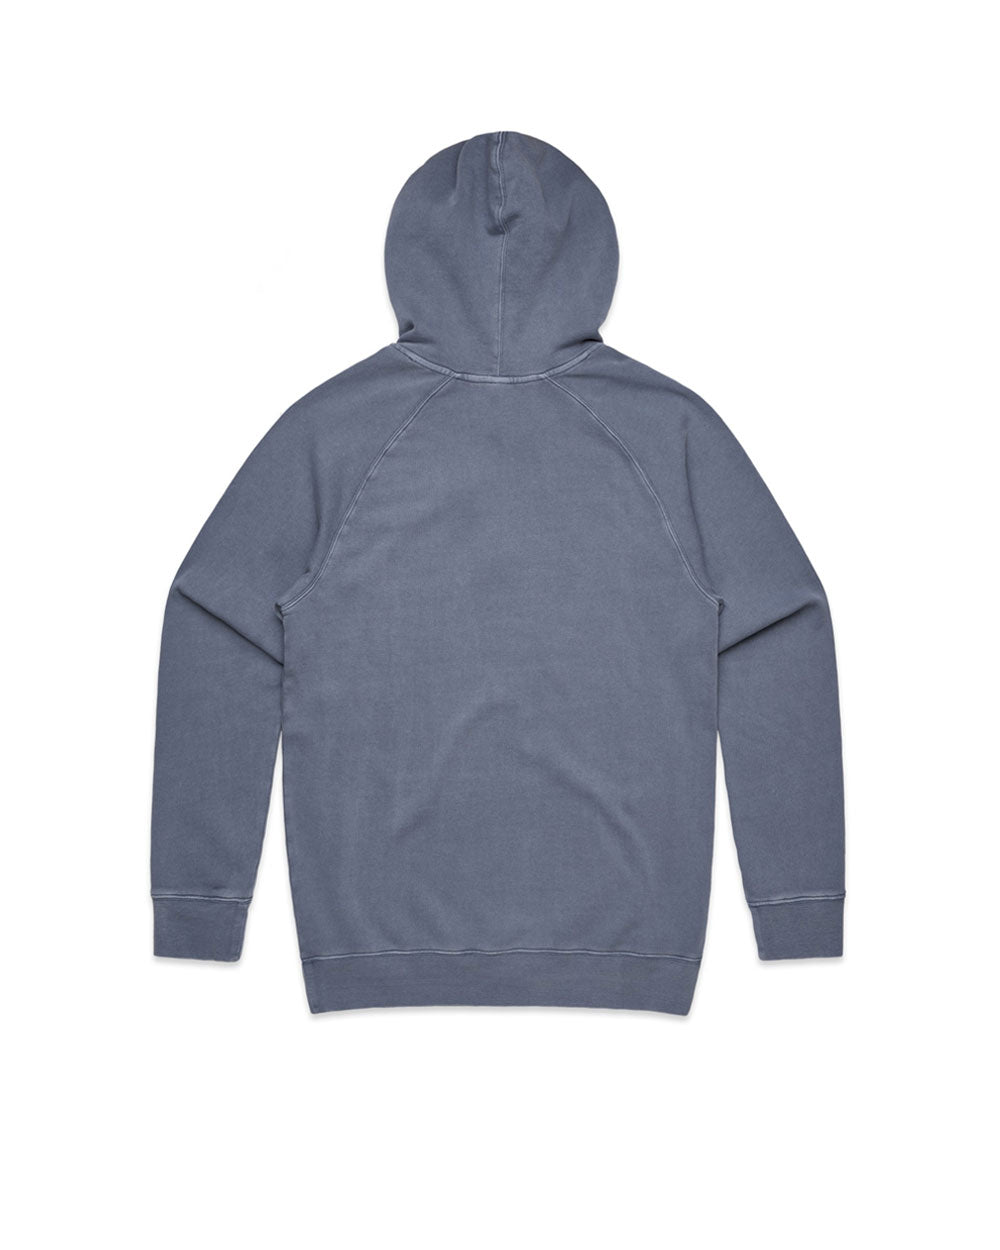 No Worries Faded Blue Hoody - Threadbox